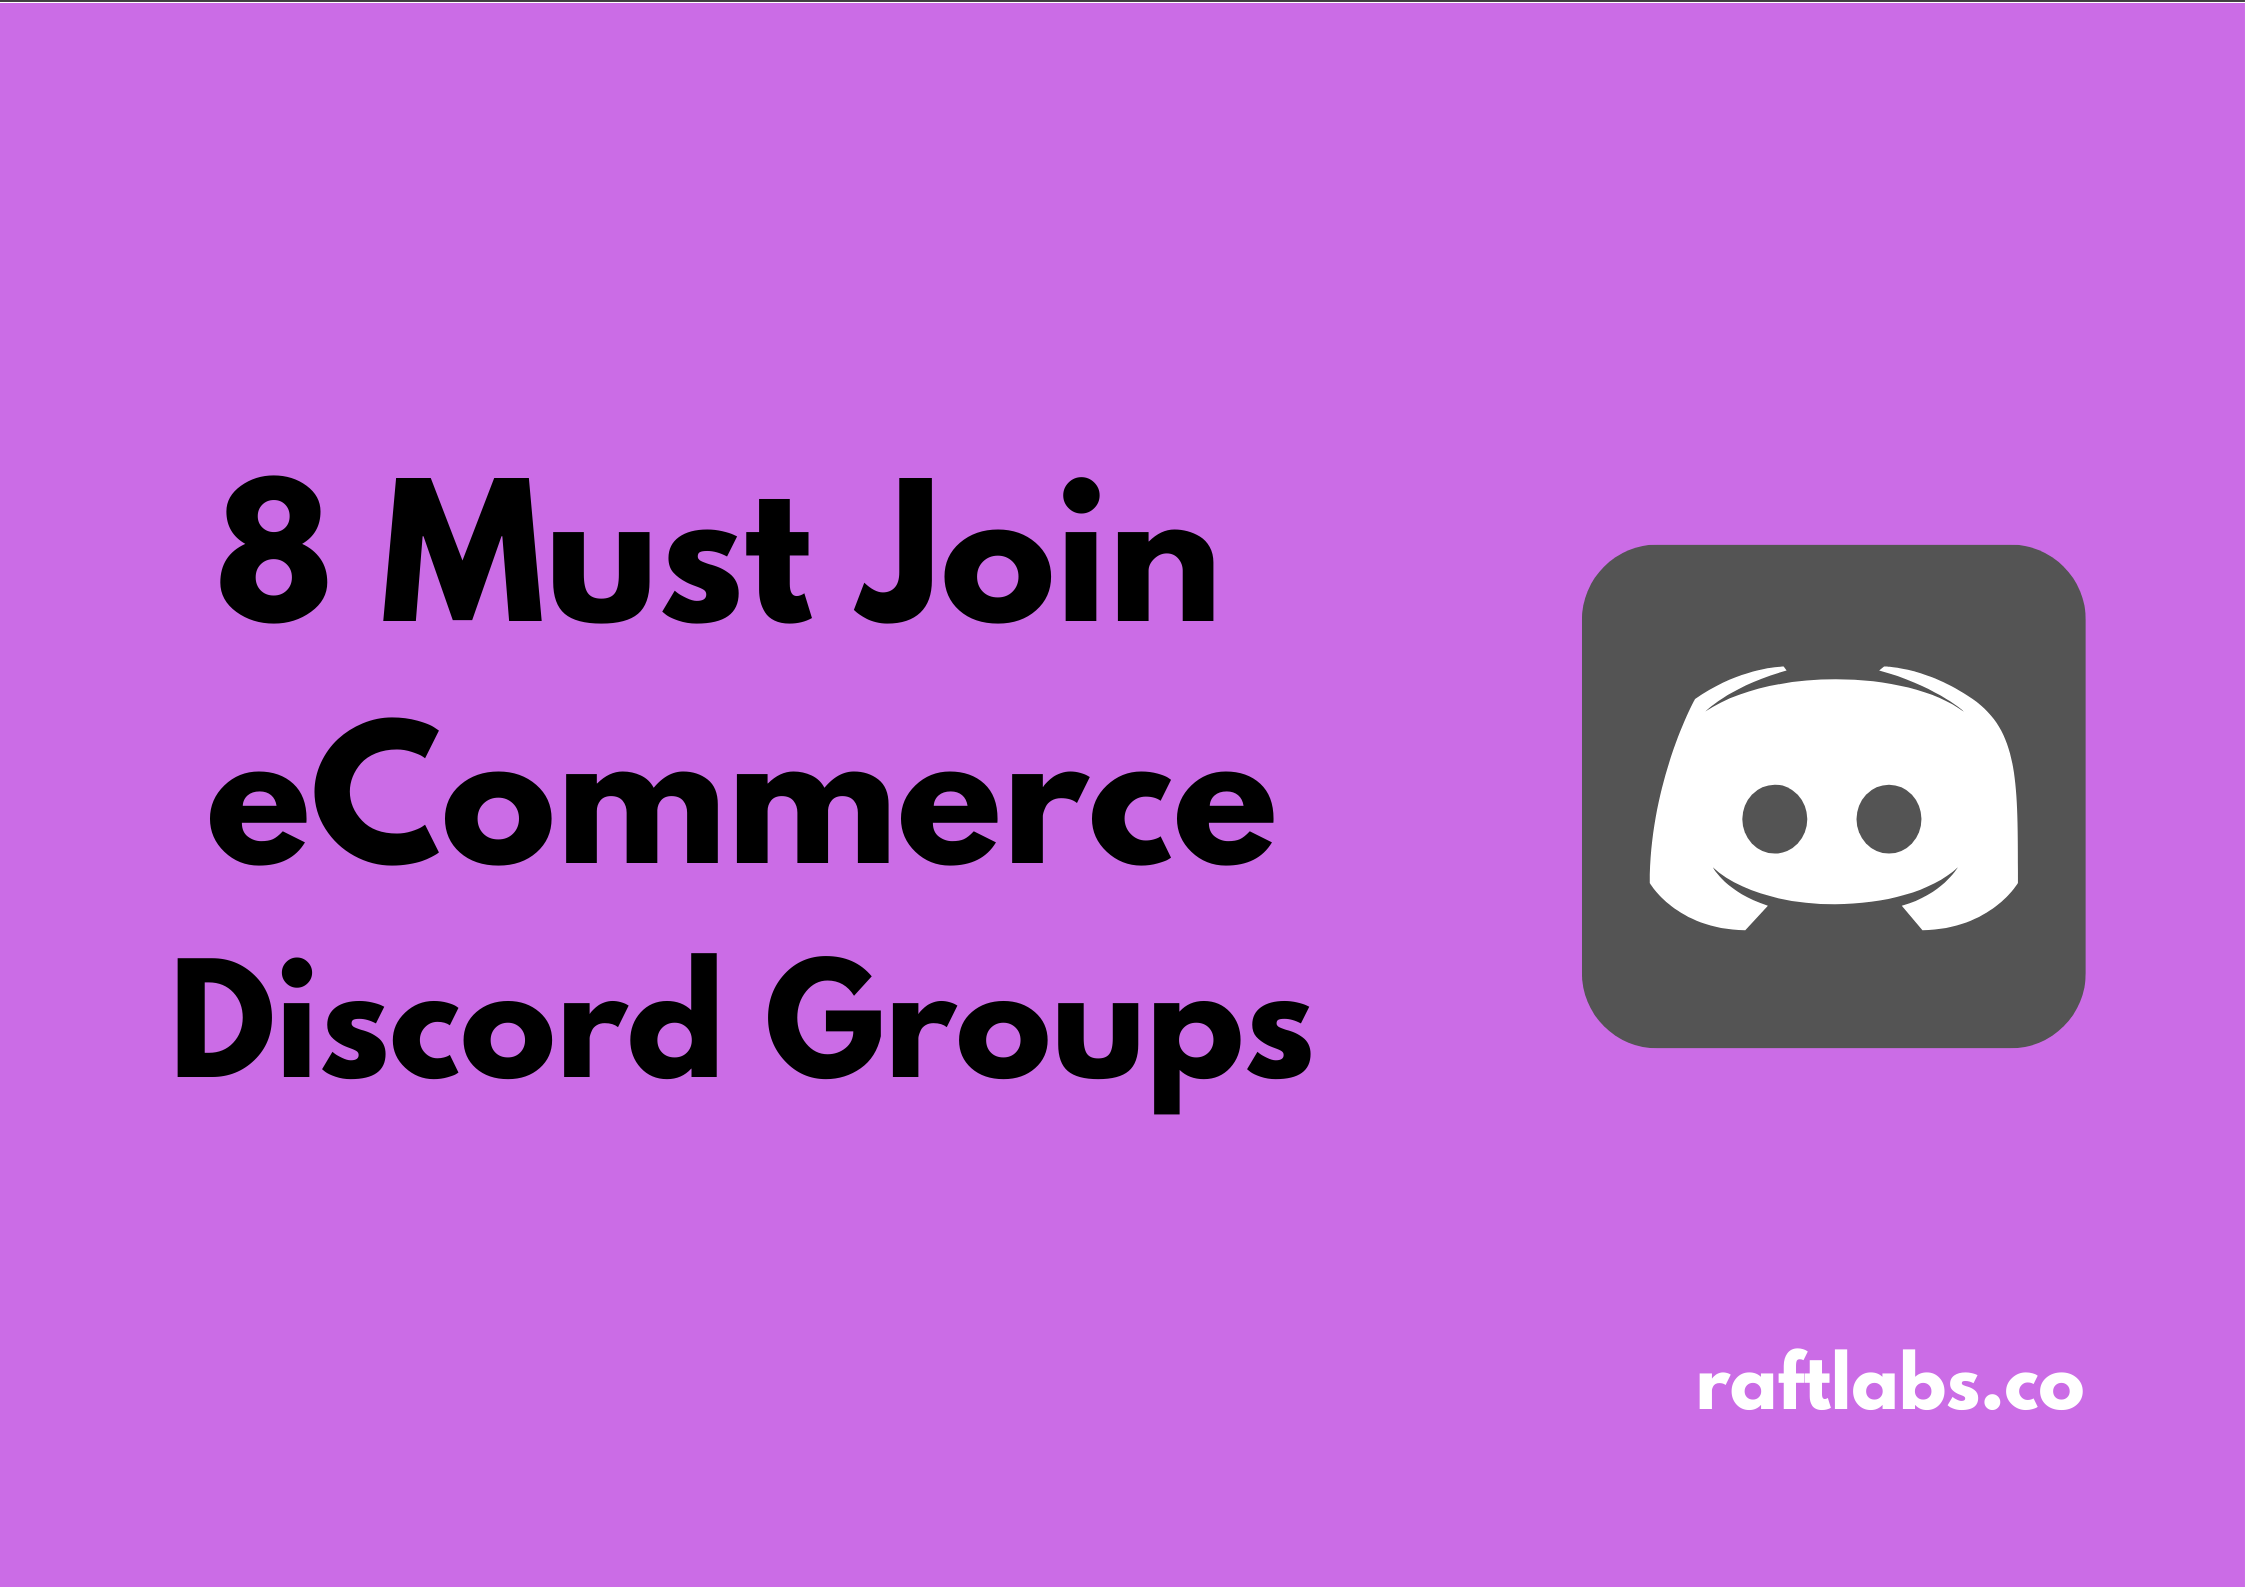 Handpicked list of best eCommerce Discord Channels| raftlabs